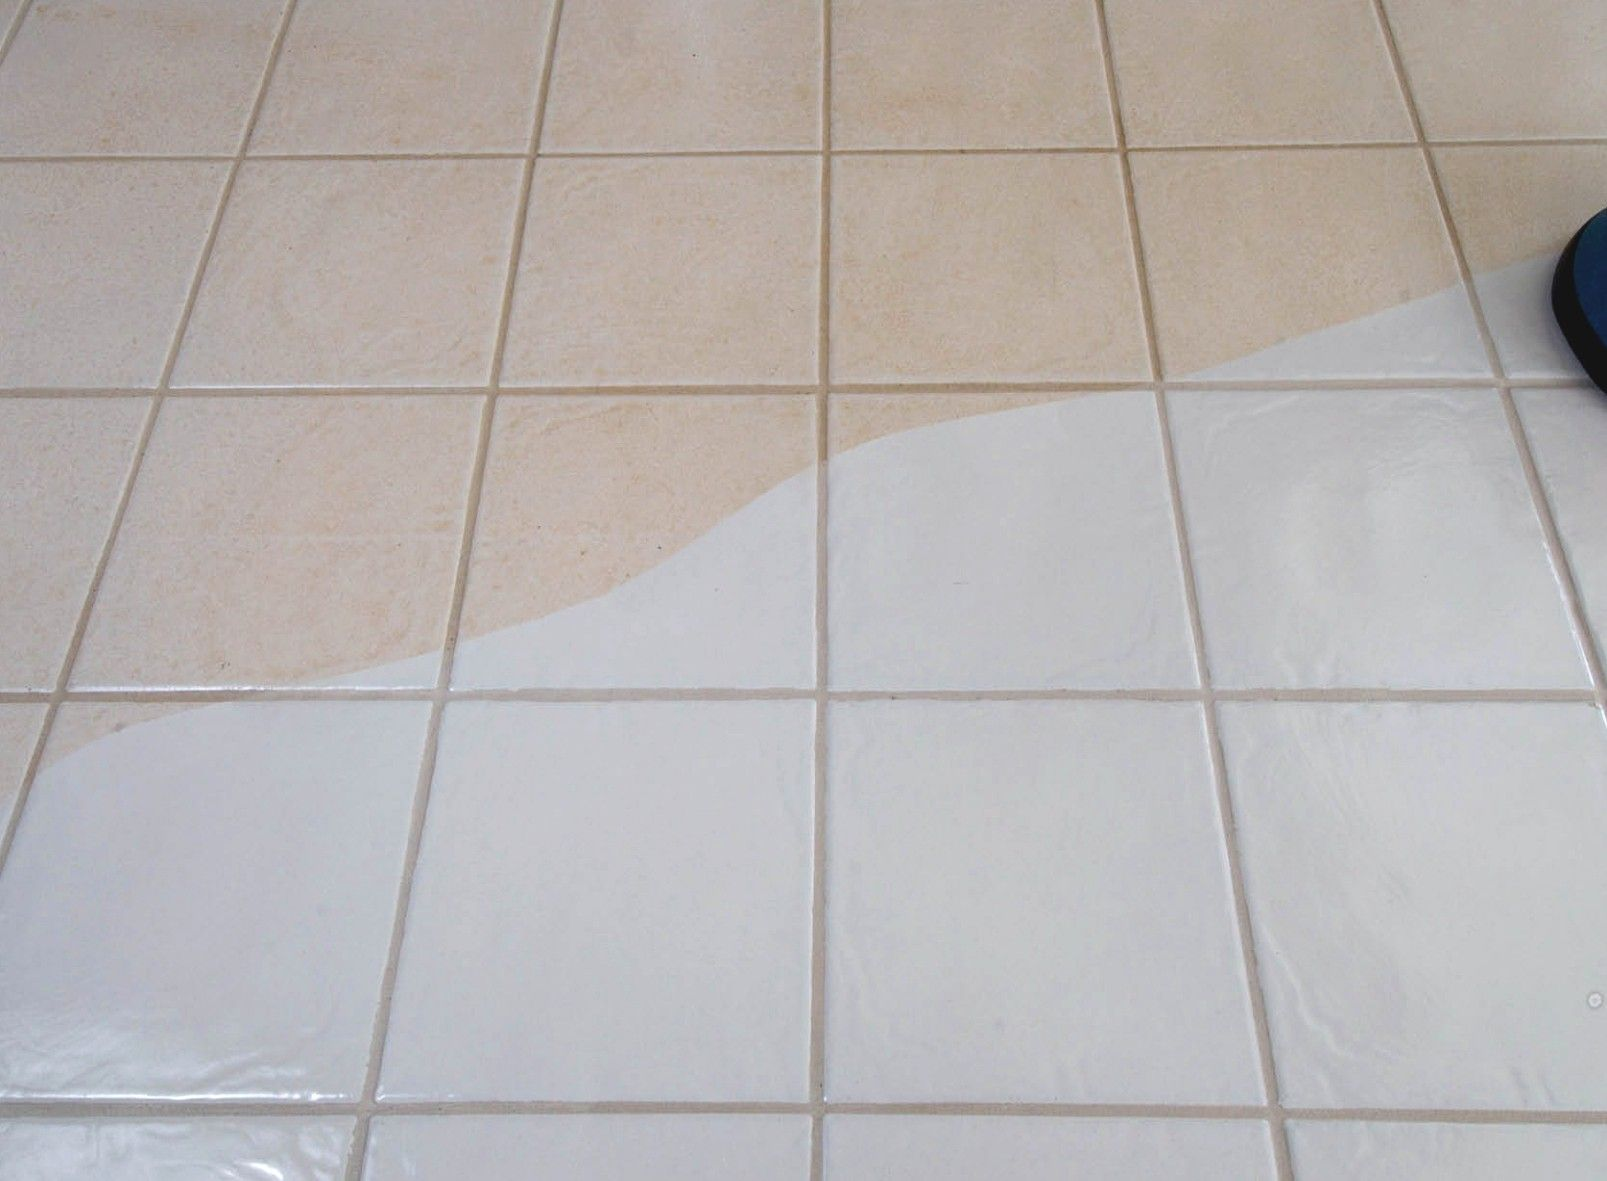 How To Clean Dirty Tile Floors Easily 1 Vacuum Cleaner 2 Mopping 3